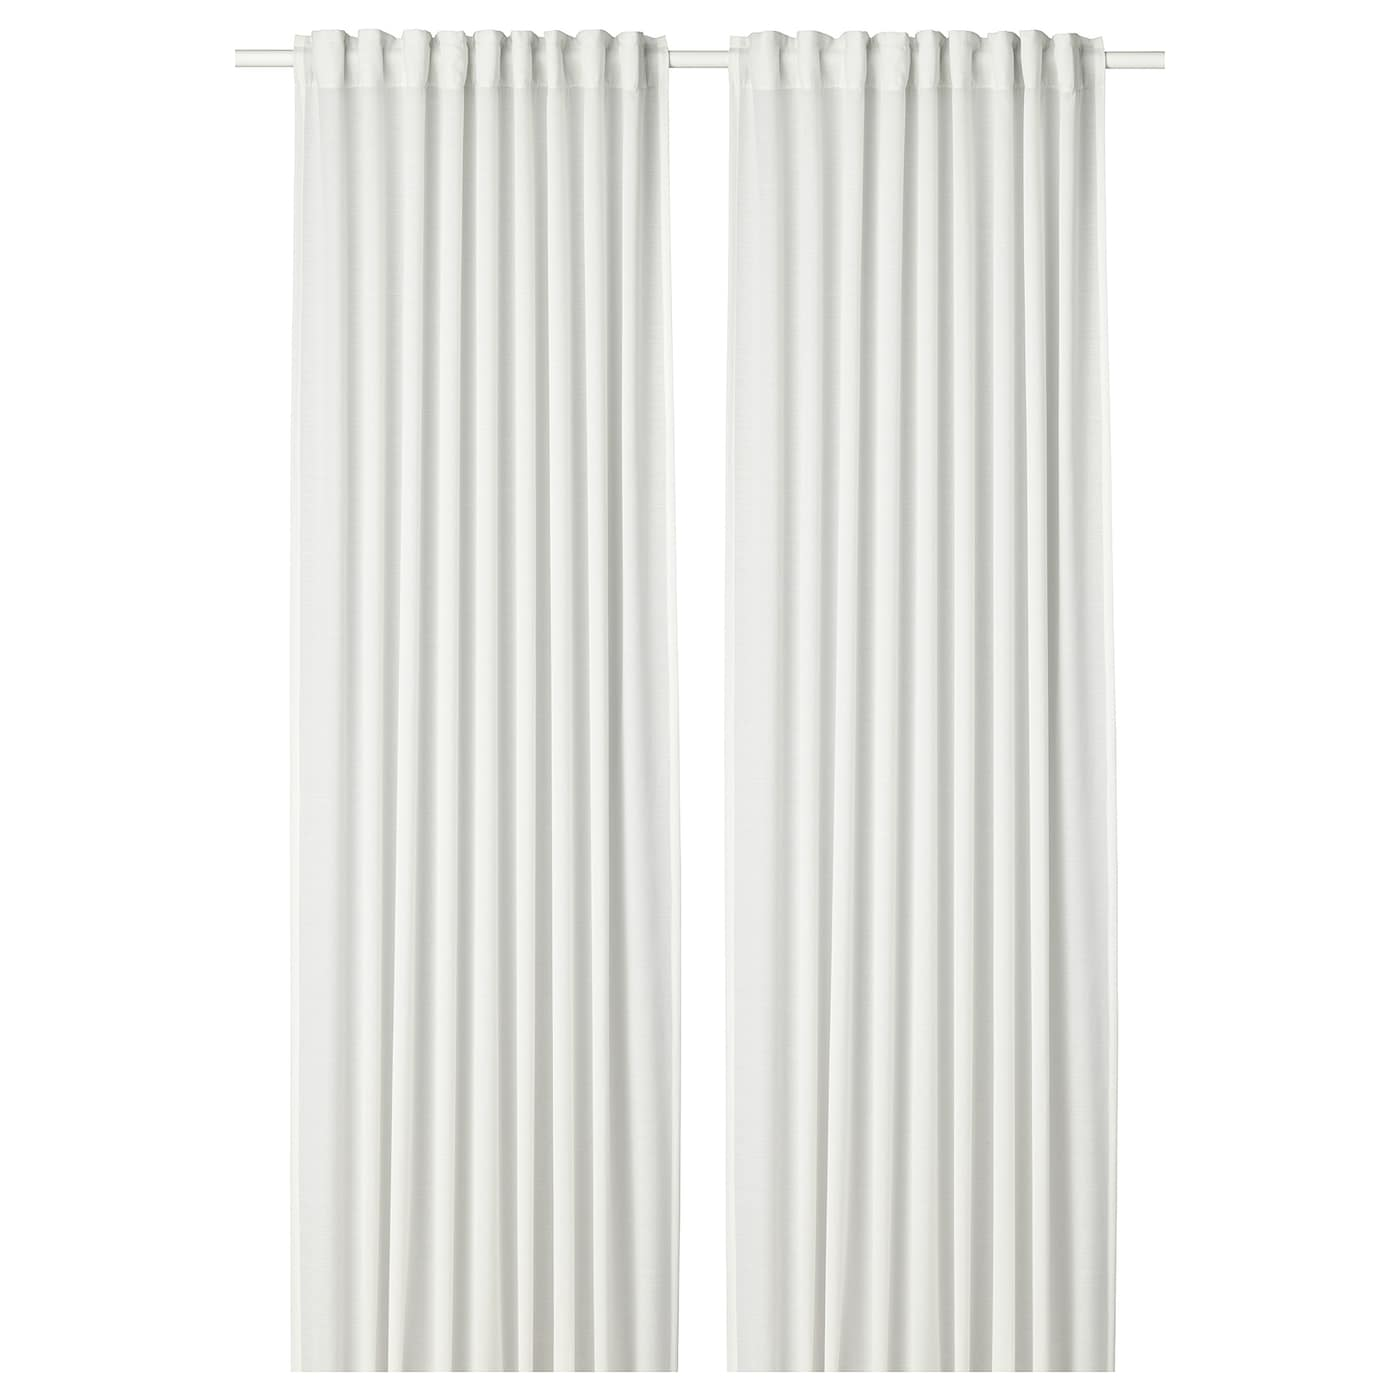 Hilja Curtains 1 Pair White Ikea